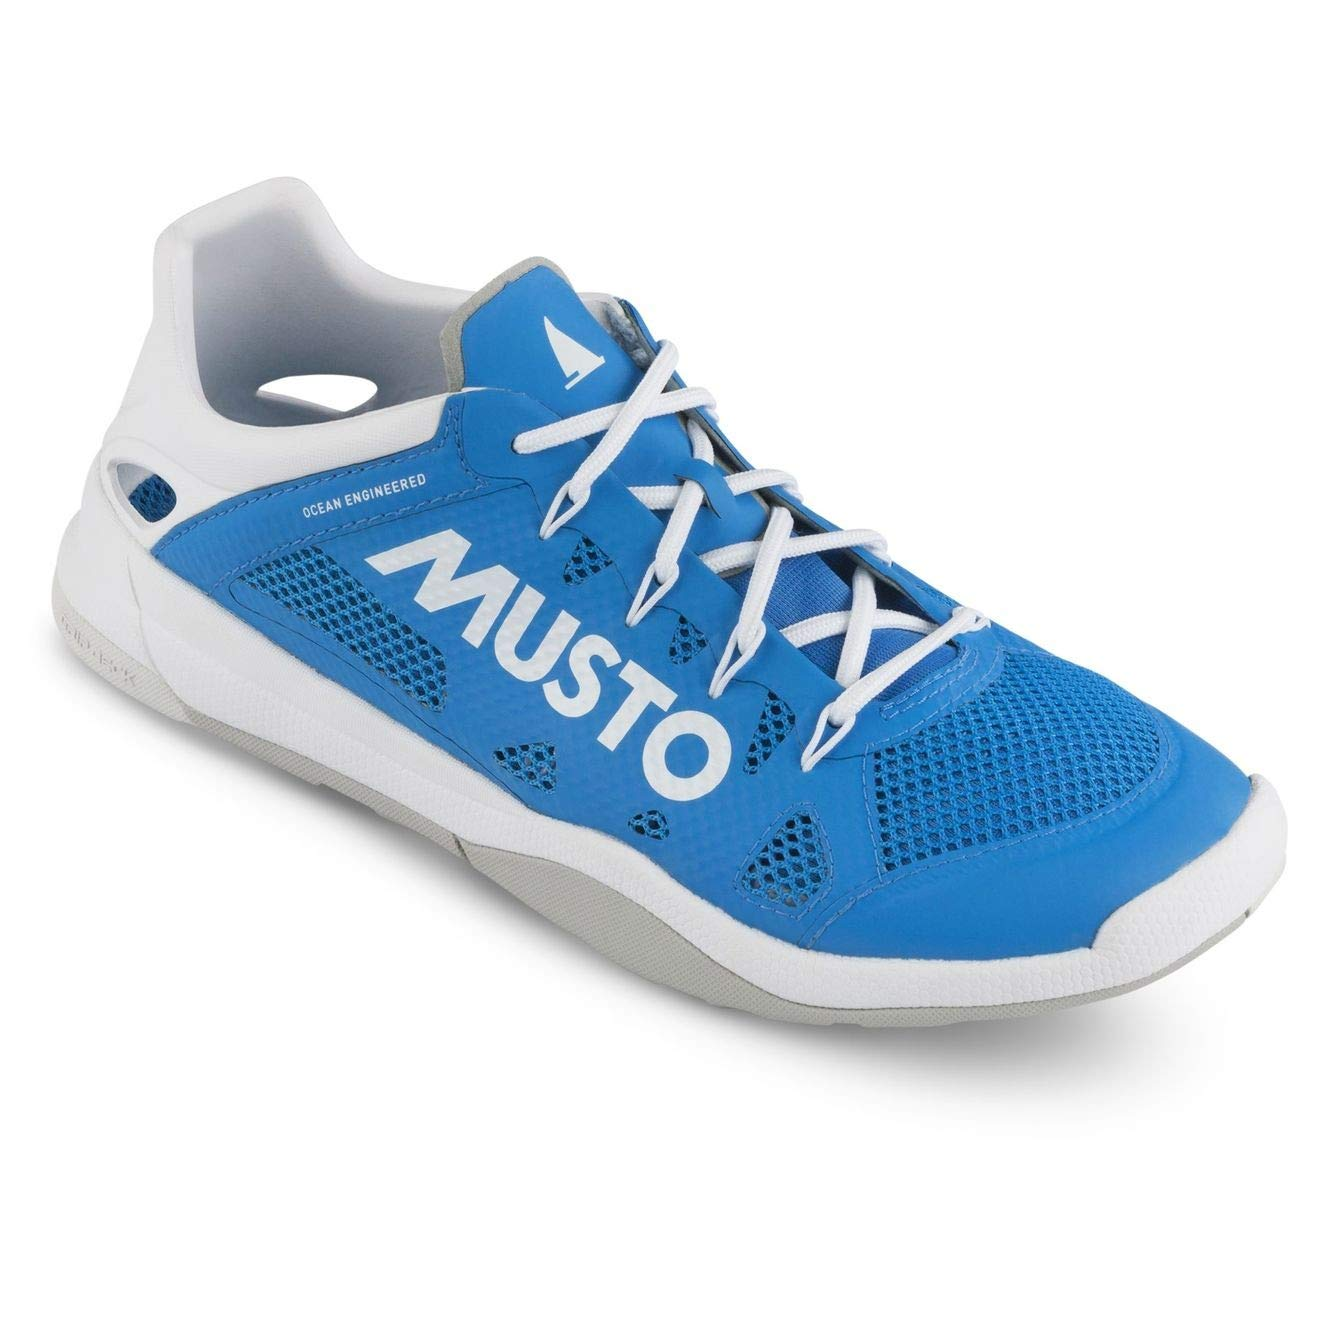 おすすめ Musto Dynamic Pro Shoes II Sailing Shoes Size – Brilliant Blue Musto B07B8PJTJP Uk Size 10, クシロシ:637a98c4 --- arianechie.dominiotemporario.com